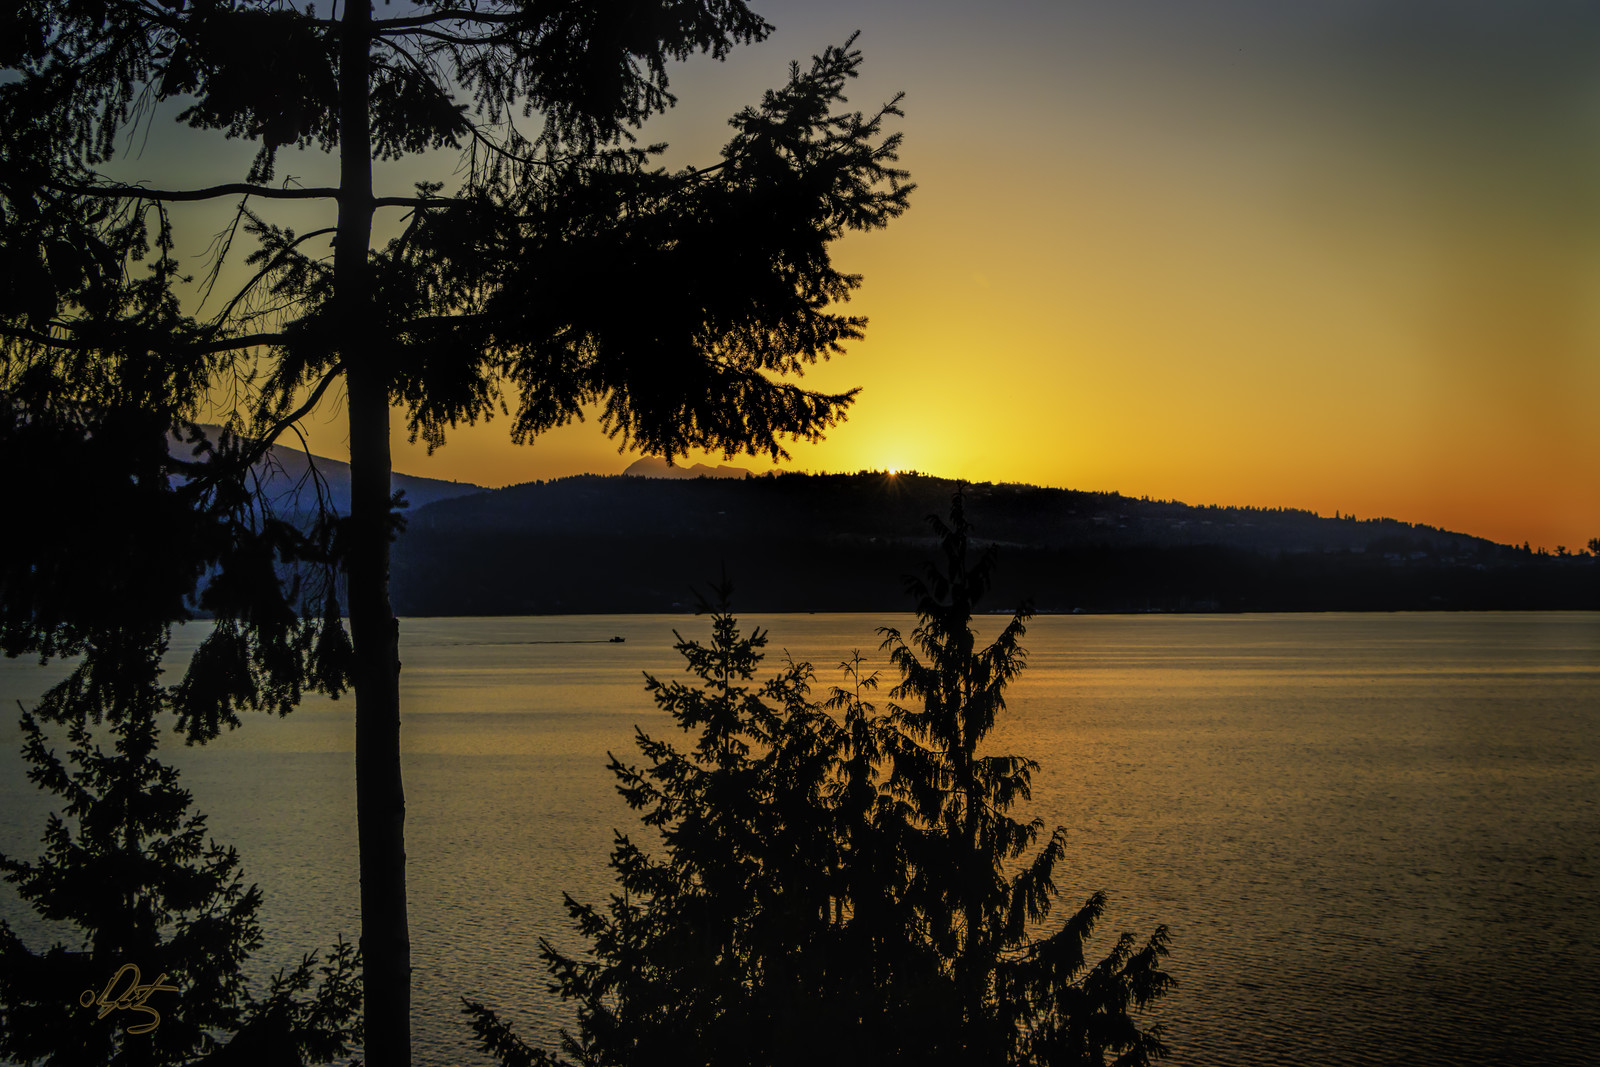 Golden Sunset at dusk over Sequim Bay with trees lining the shores